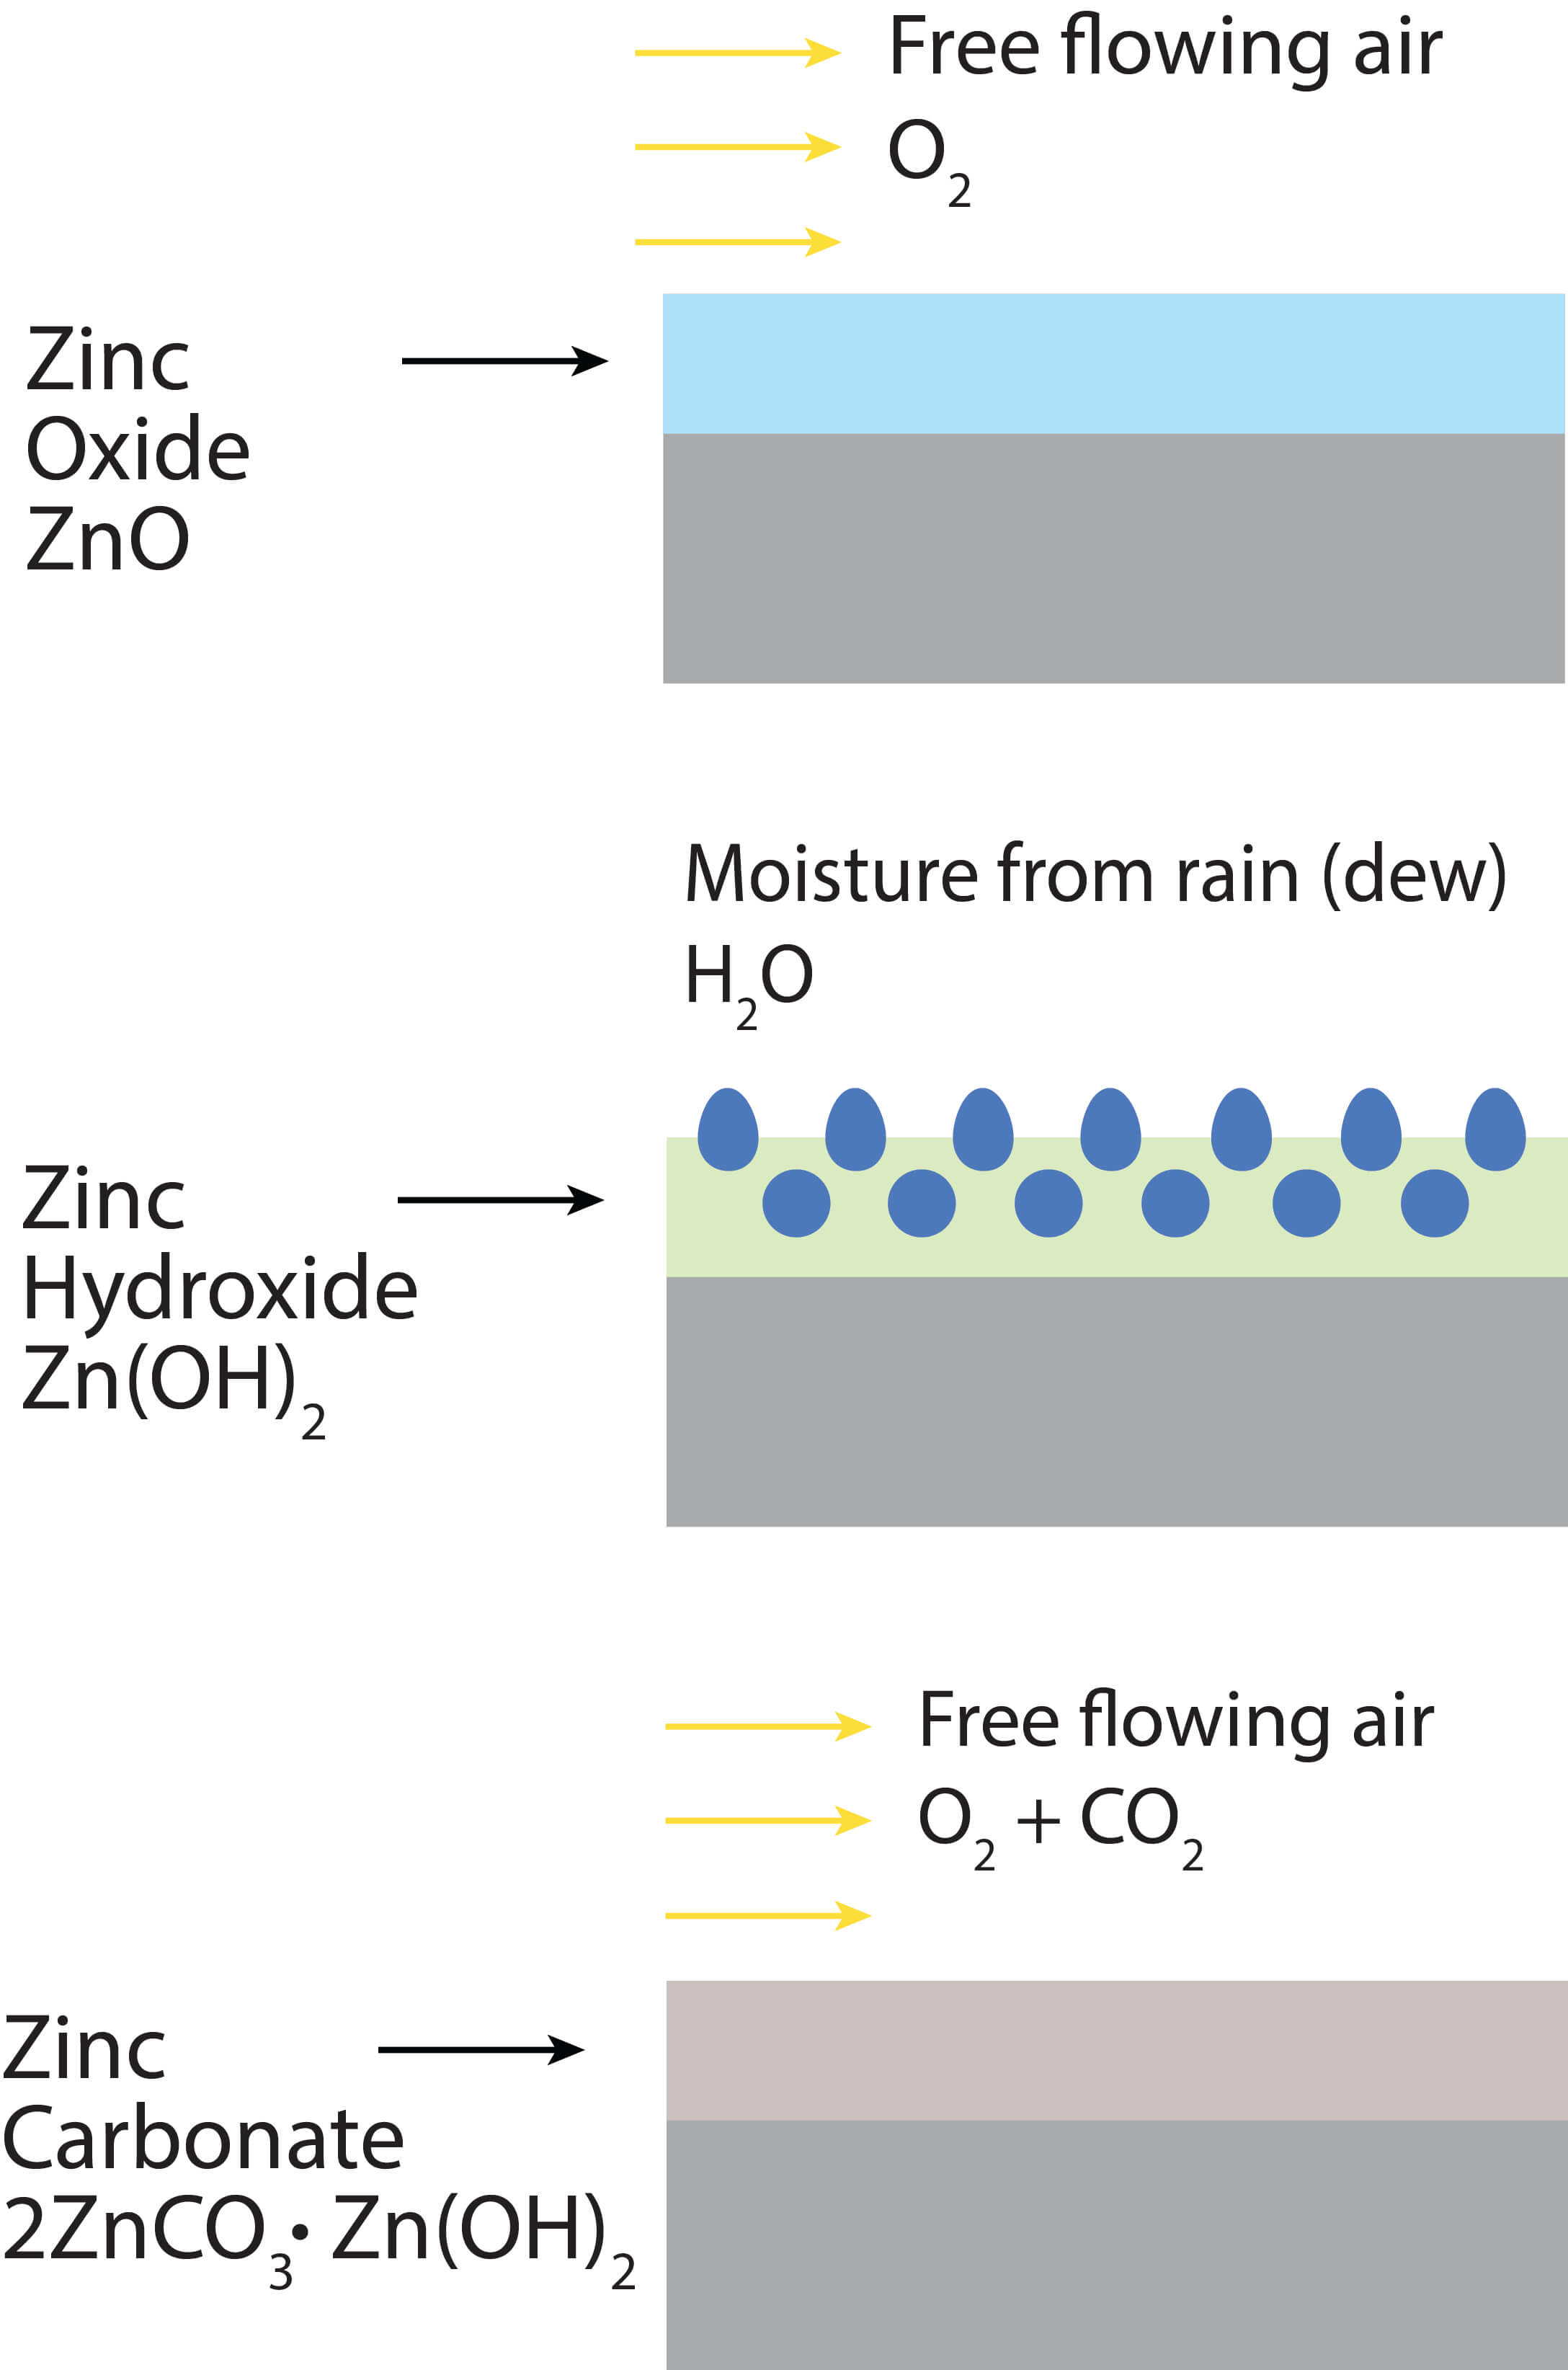 Figure 2. Zinc surface reacting with air and moisture to create a protective zinc carbonate layer.